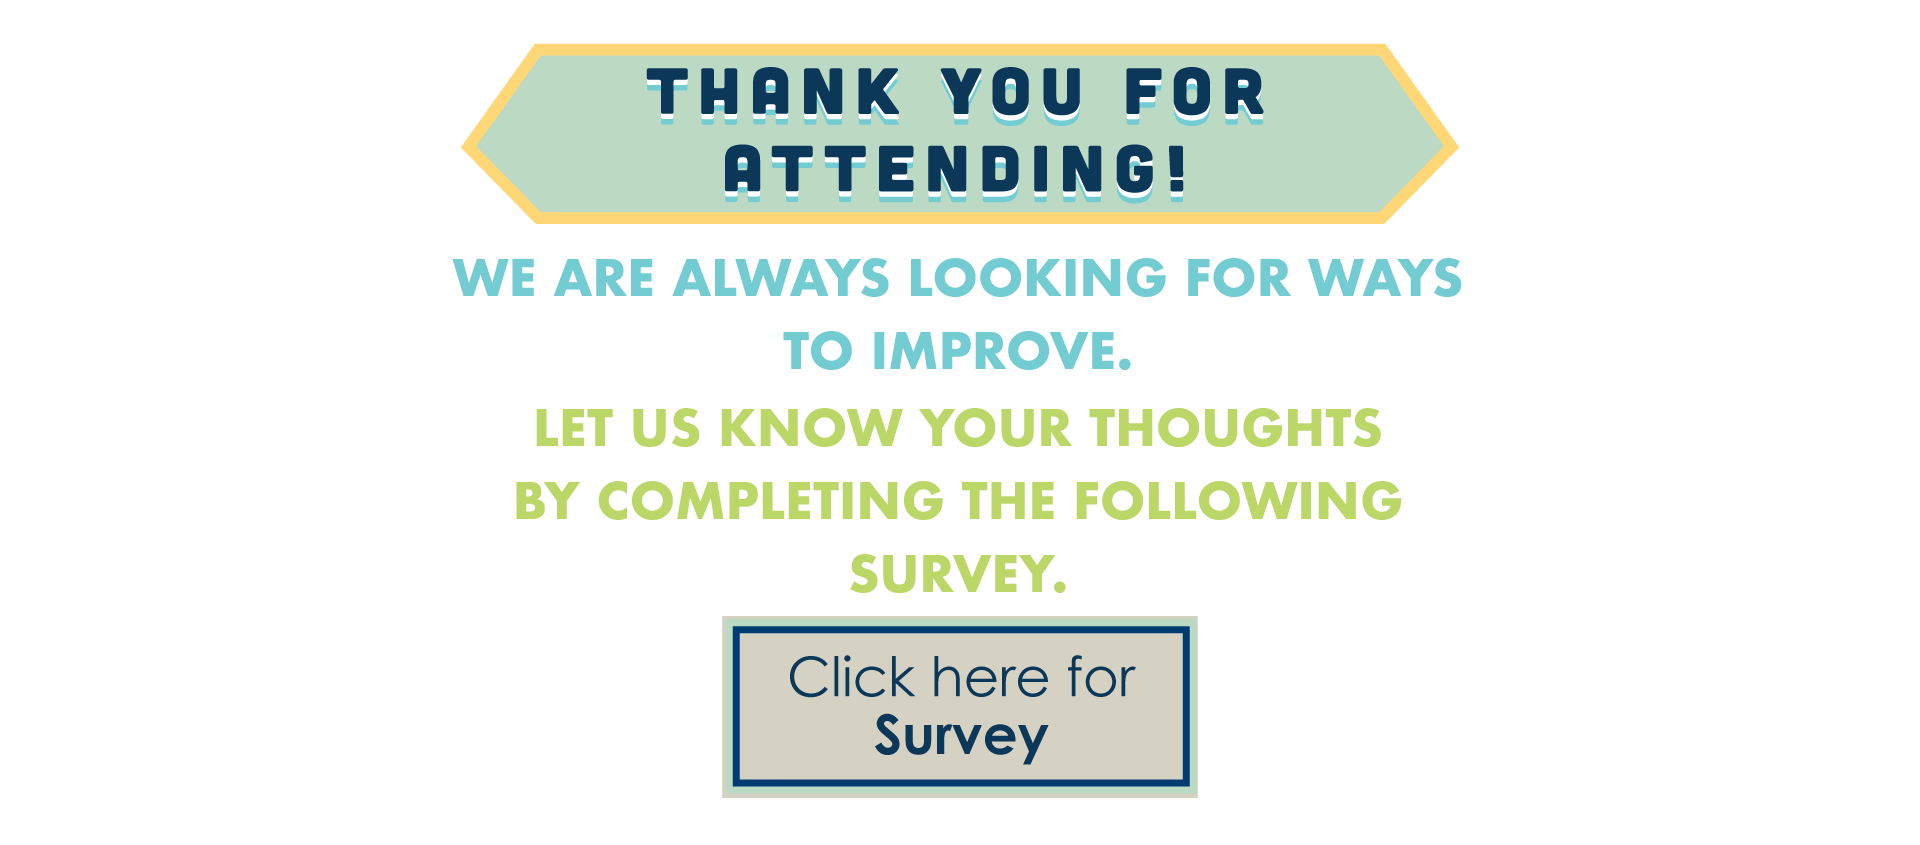 Thank you for attending! We are always looking for ways to improve. Let us know your thoughts by completing the following survey. Click here for Survey